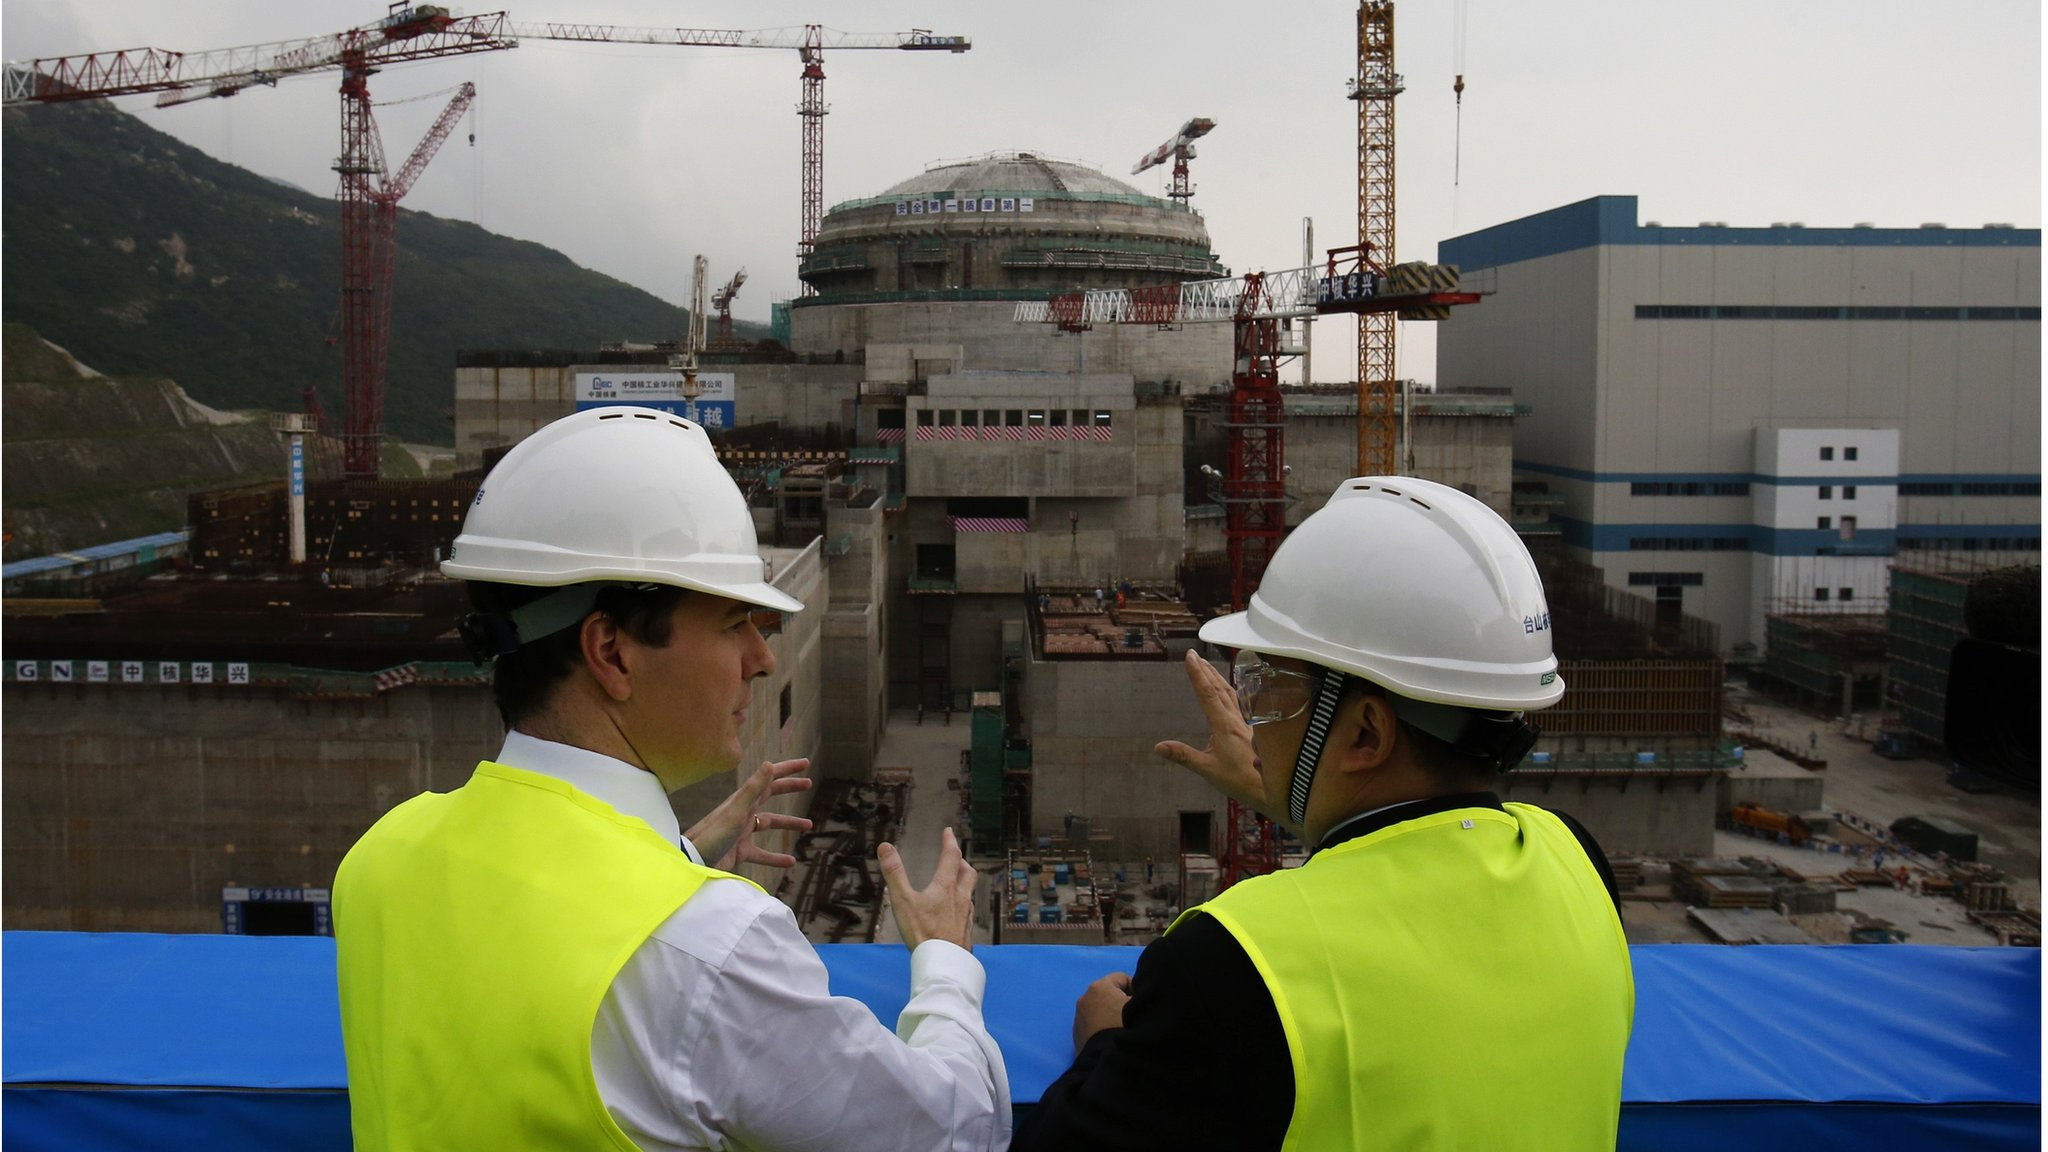 George Osborne (L) talks with Taishan Nuclear Power Joint Venture general manager Guo Liming in front of a nuclear reactor under construction at Taishan, Guangdong province